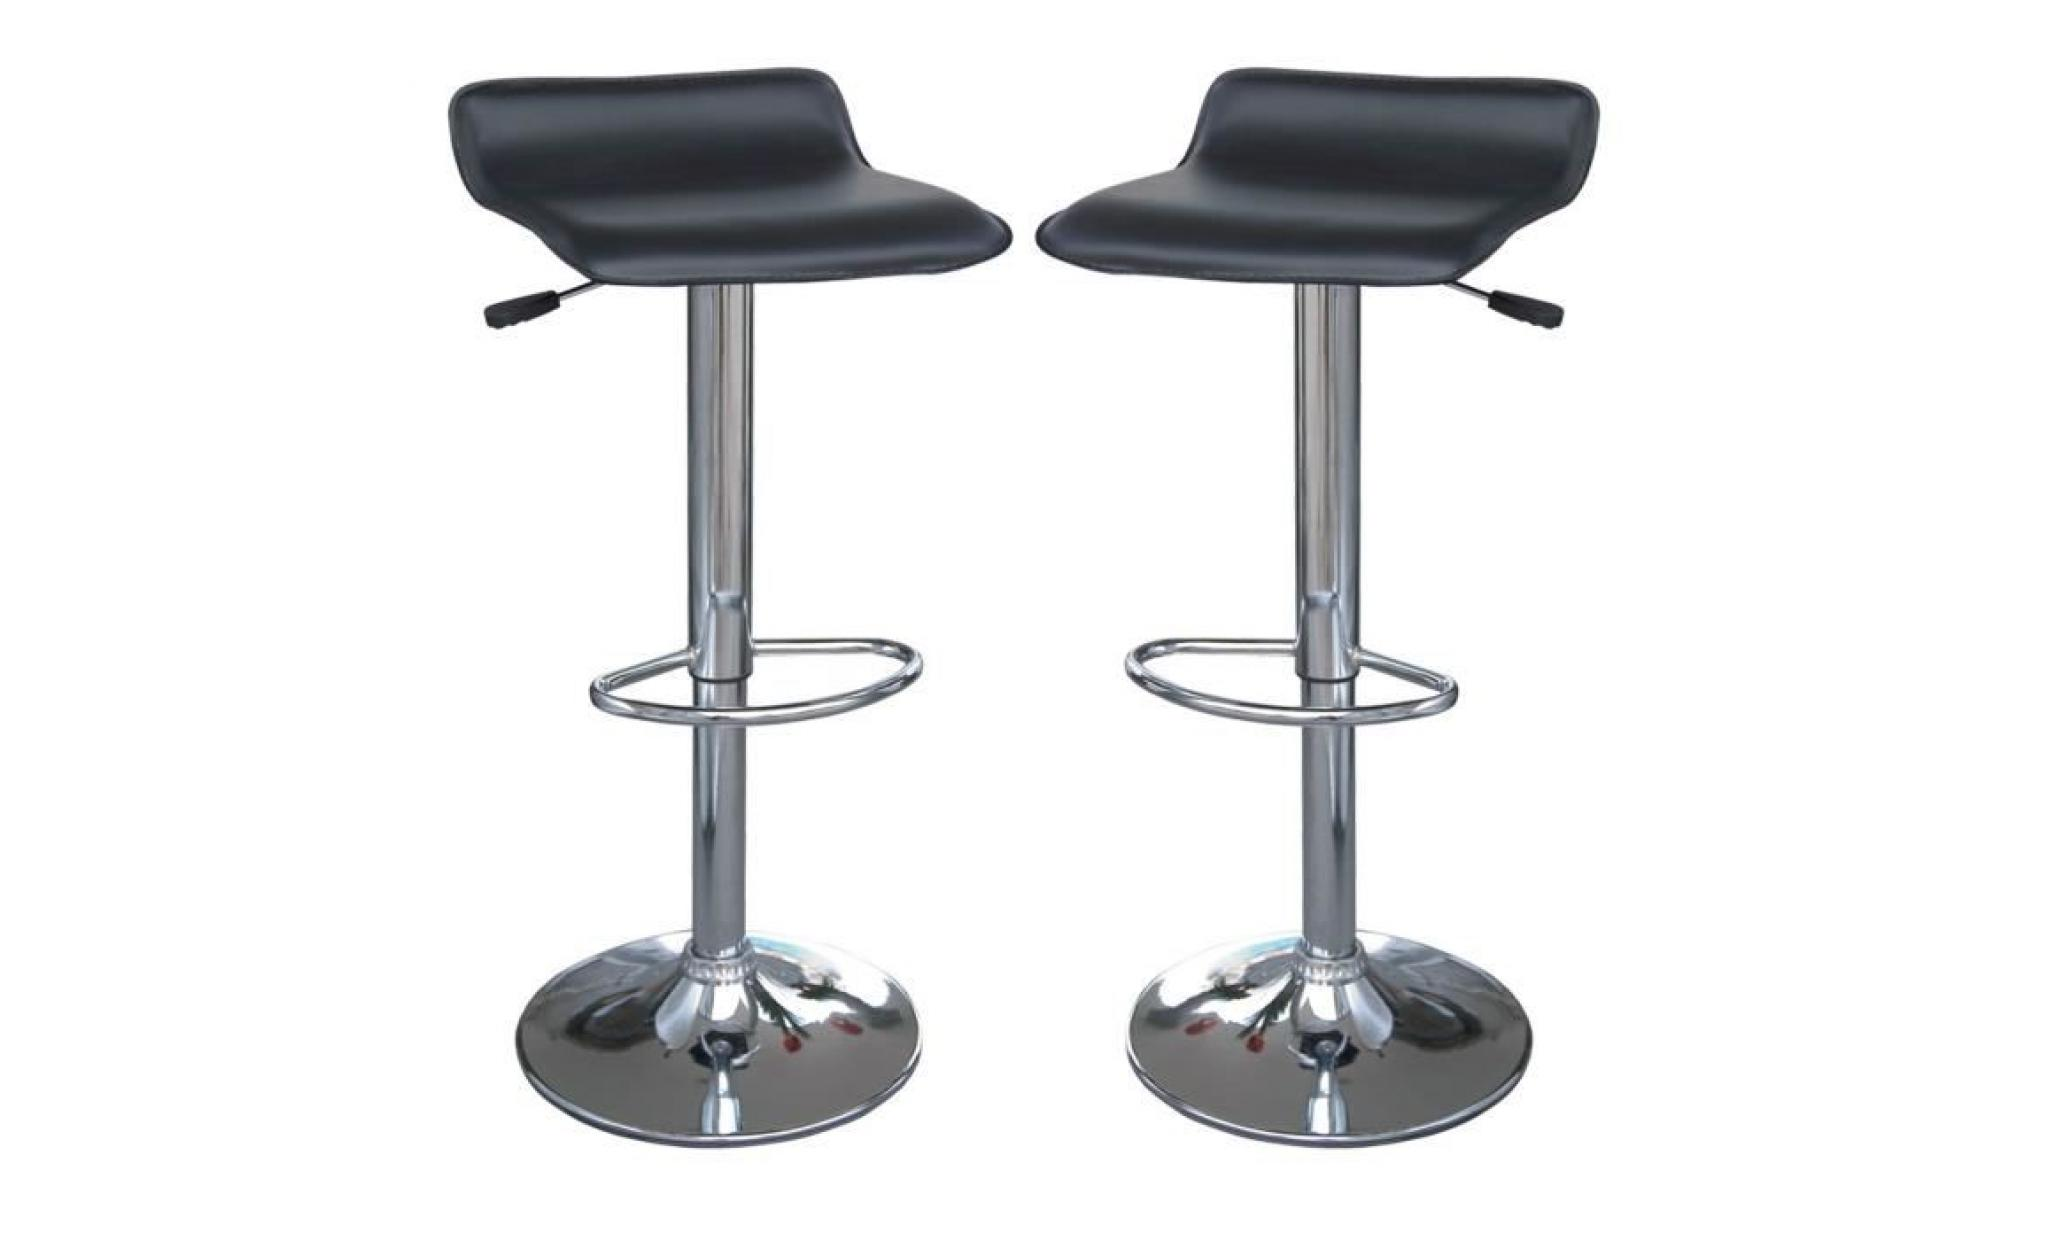 Lot De 2 Tabourets De Bar Clark Lot De 2 Tabouret De Bar Pas Cher Latest Lot De Tabourets De Bar